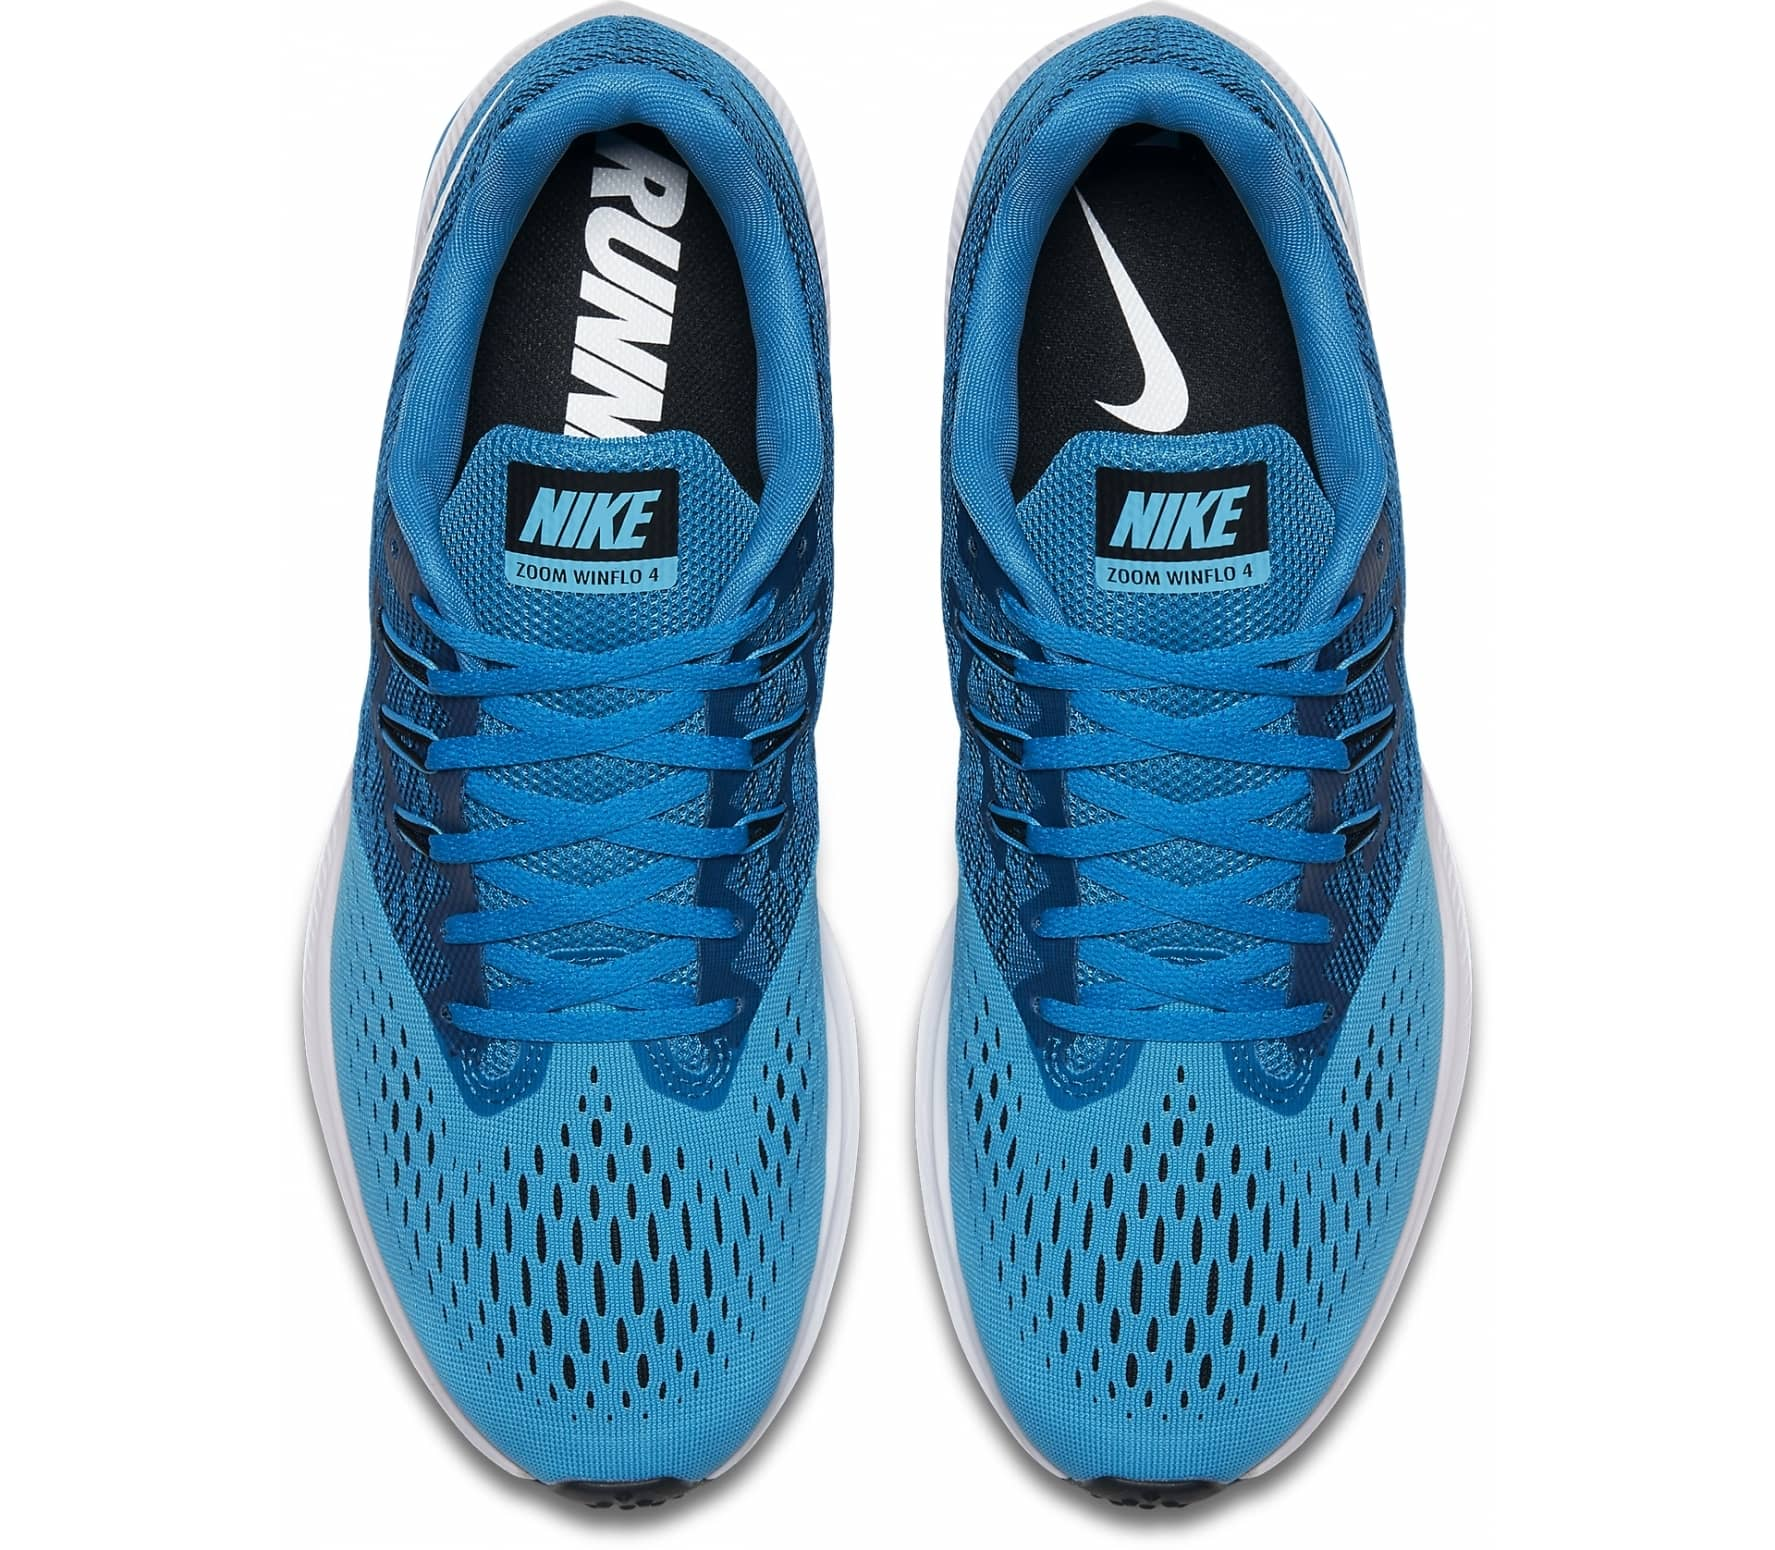 06fed0eb1759 ... shop nike zoom winflo 4 mens running shoes blue 8de77 8b8d5